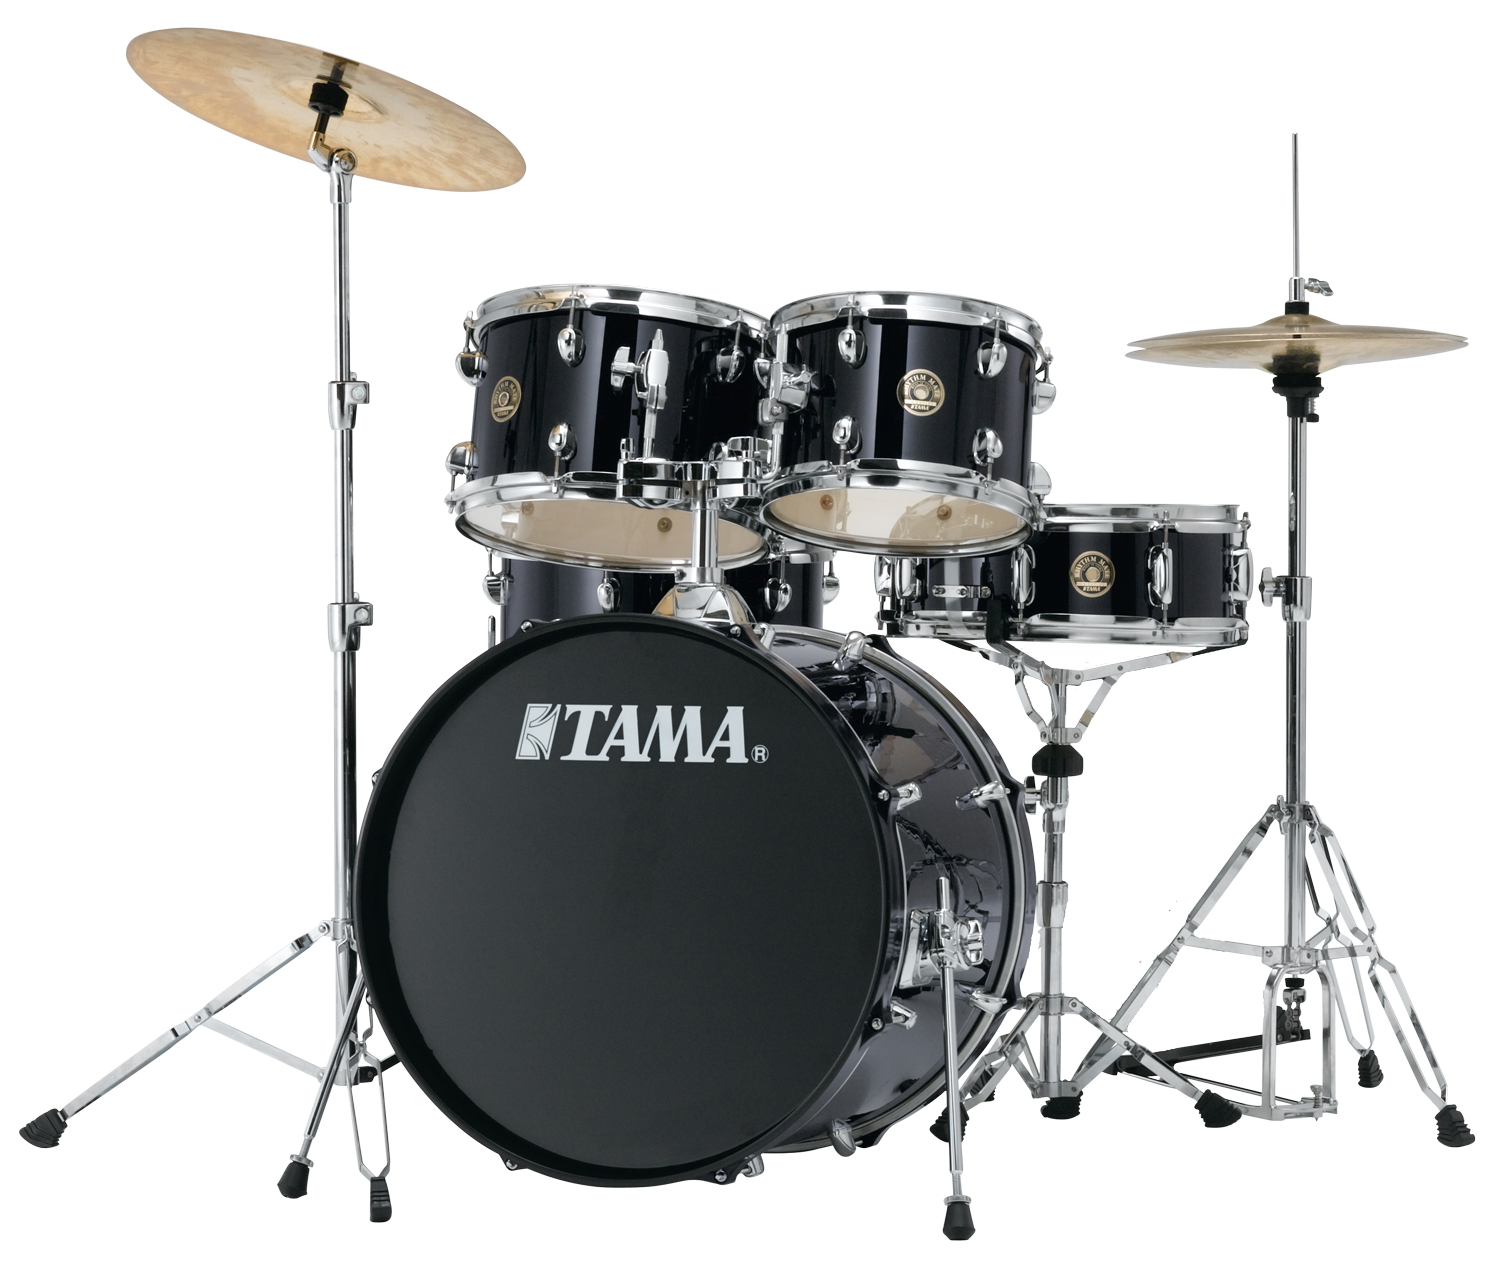 musicworks drums percussion jazz drum kits jazz kits tama rhythm mate drum kit 5 piece. Black Bedroom Furniture Sets. Home Design Ideas